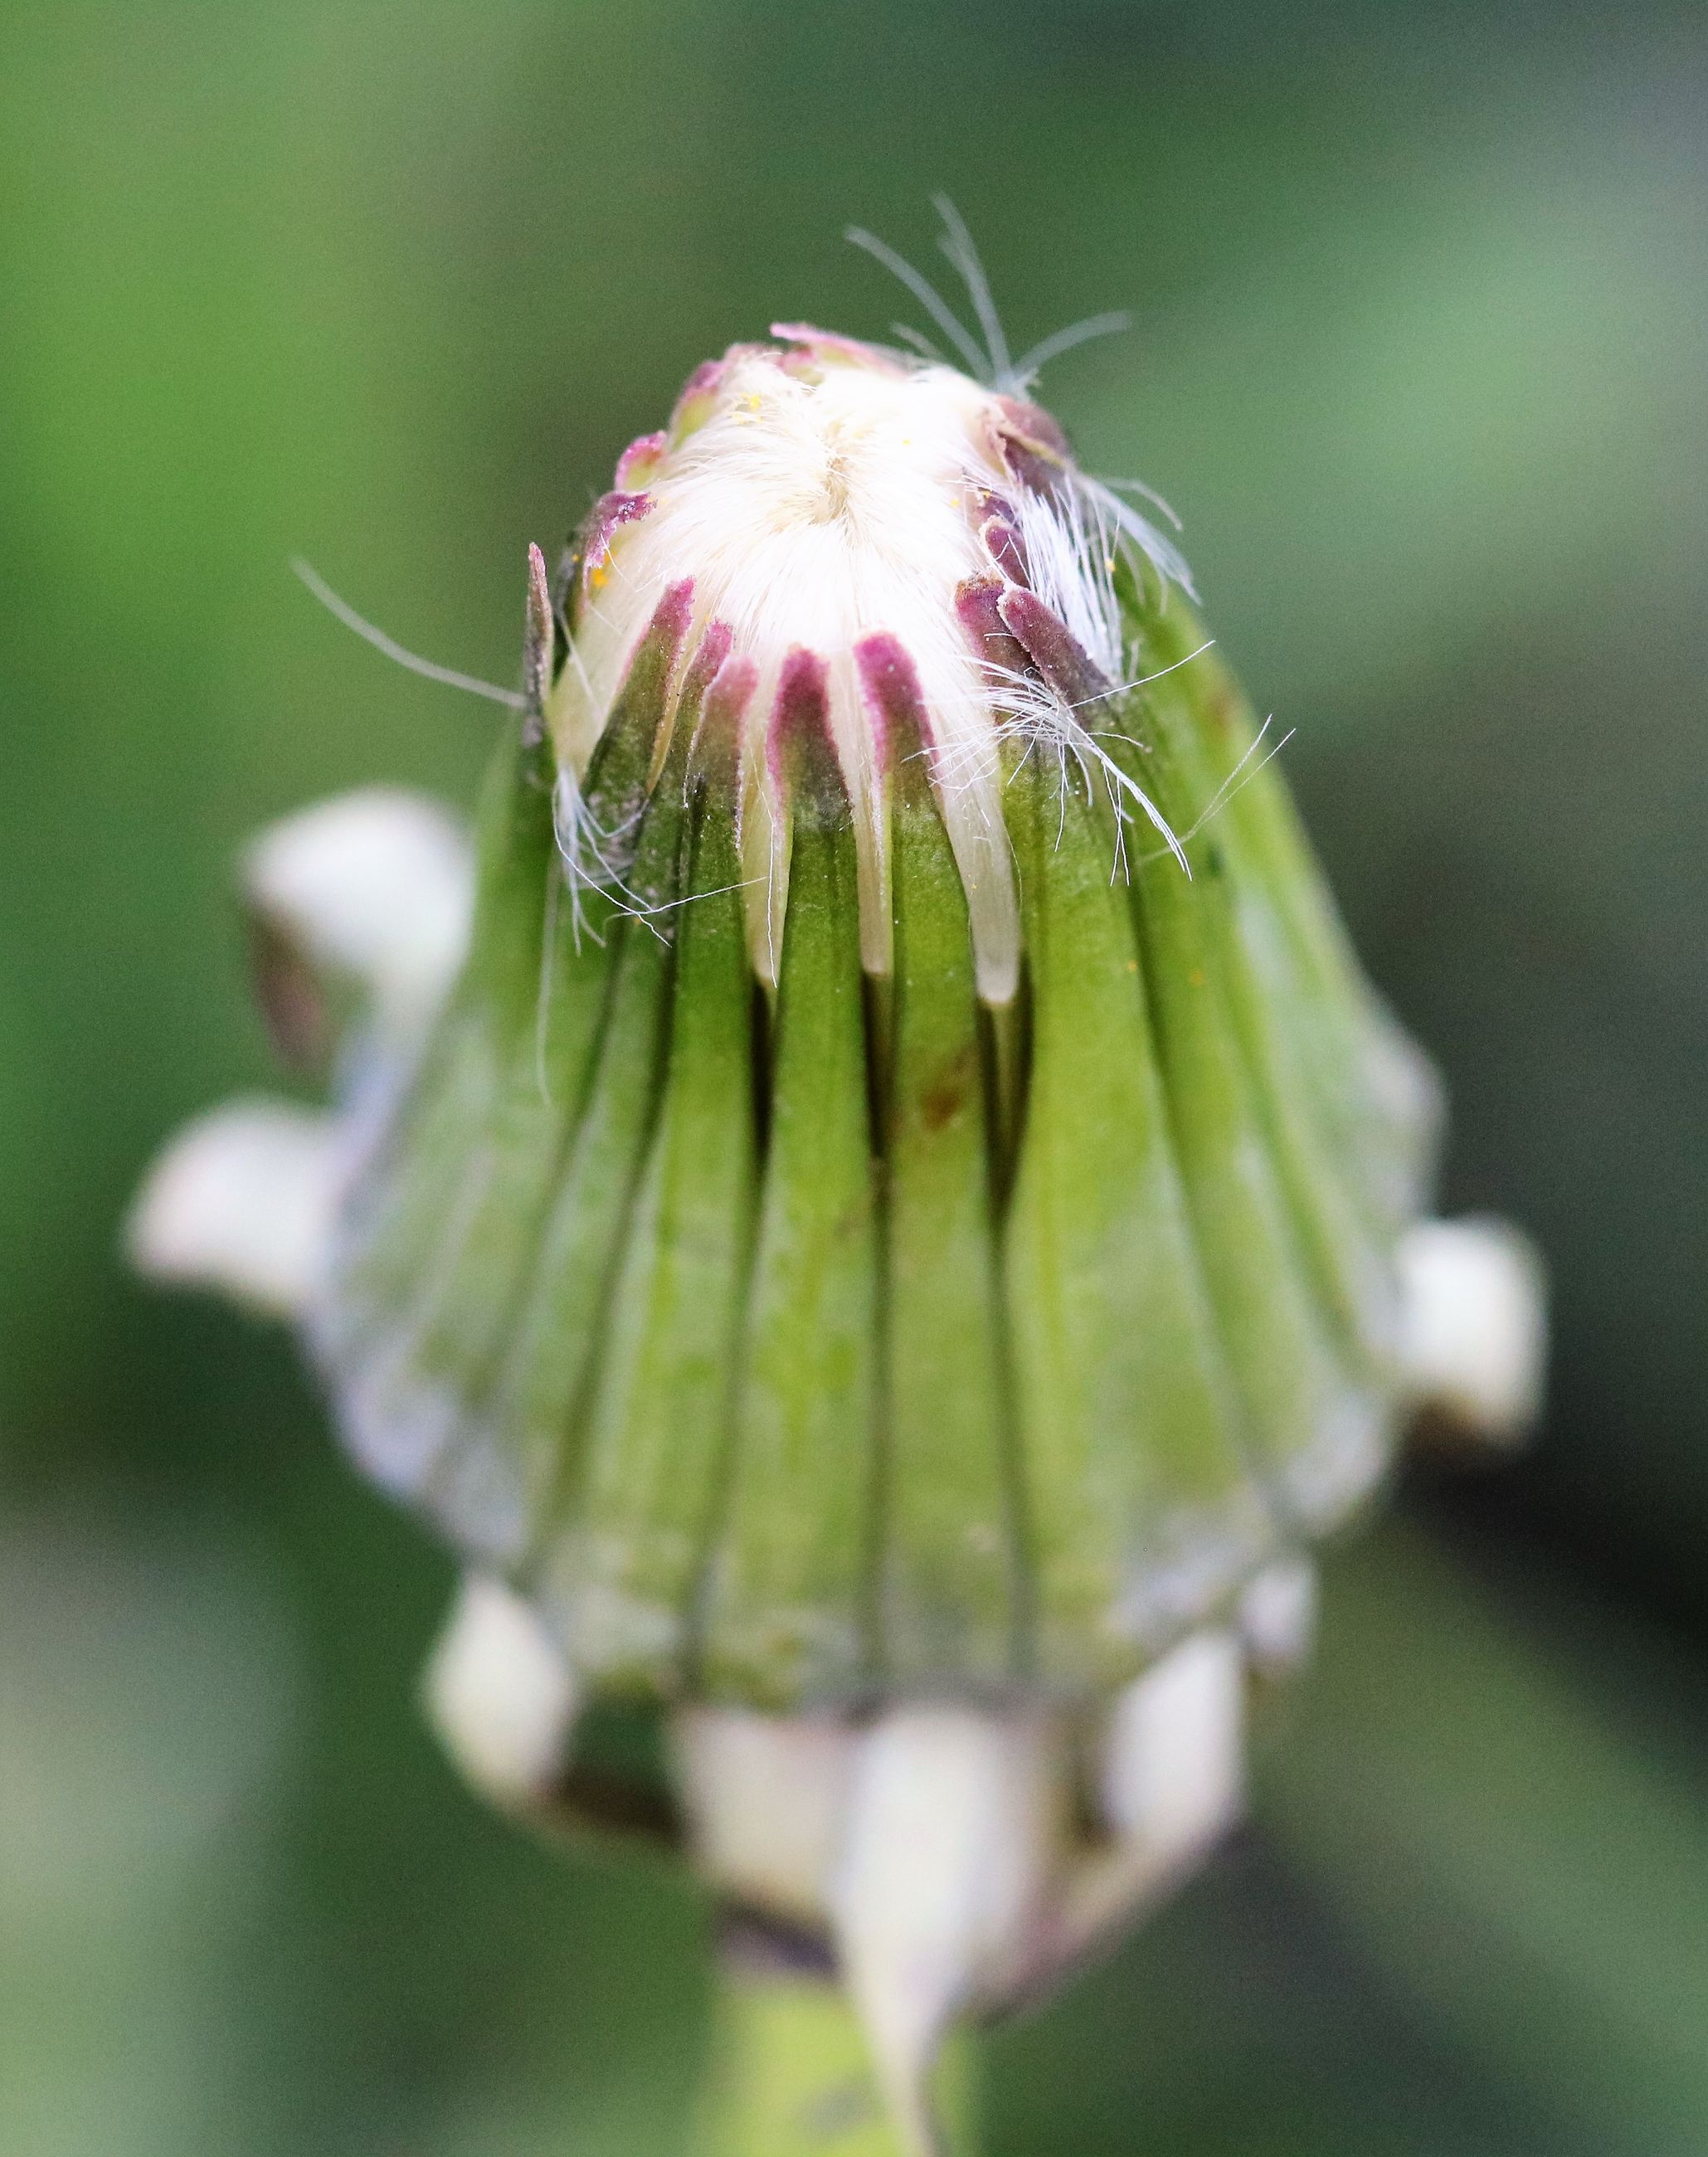 flower, fragility, freshness, close-up, growth, focus on foreground, beauty in nature, nature, single flower, plant, flower head, drop, selective focus, petal, green color, wet, leaf, water, outdoors, day